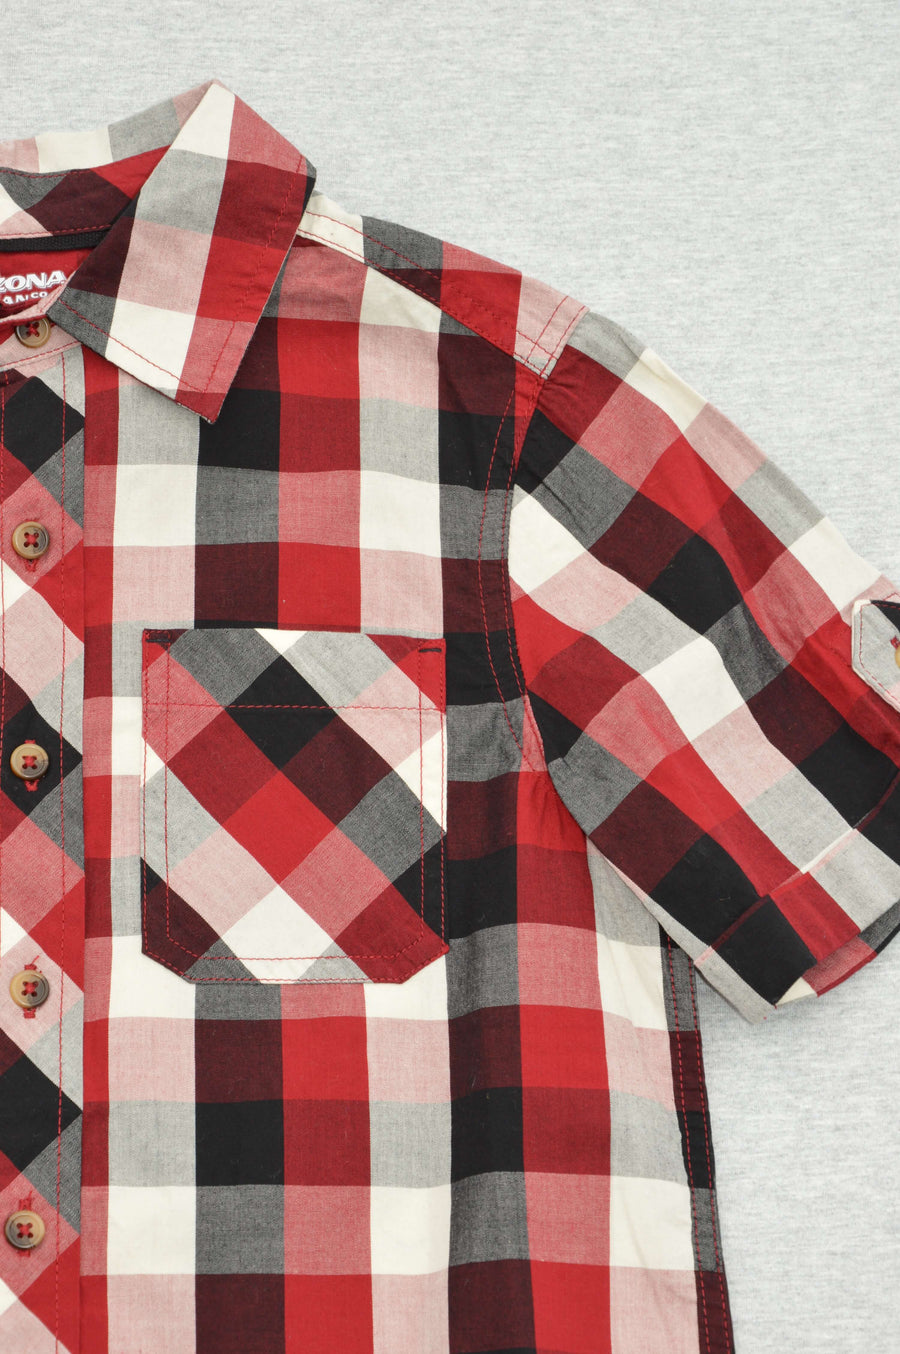 Arizona - nearly new - red, black & white check shirt, size 8